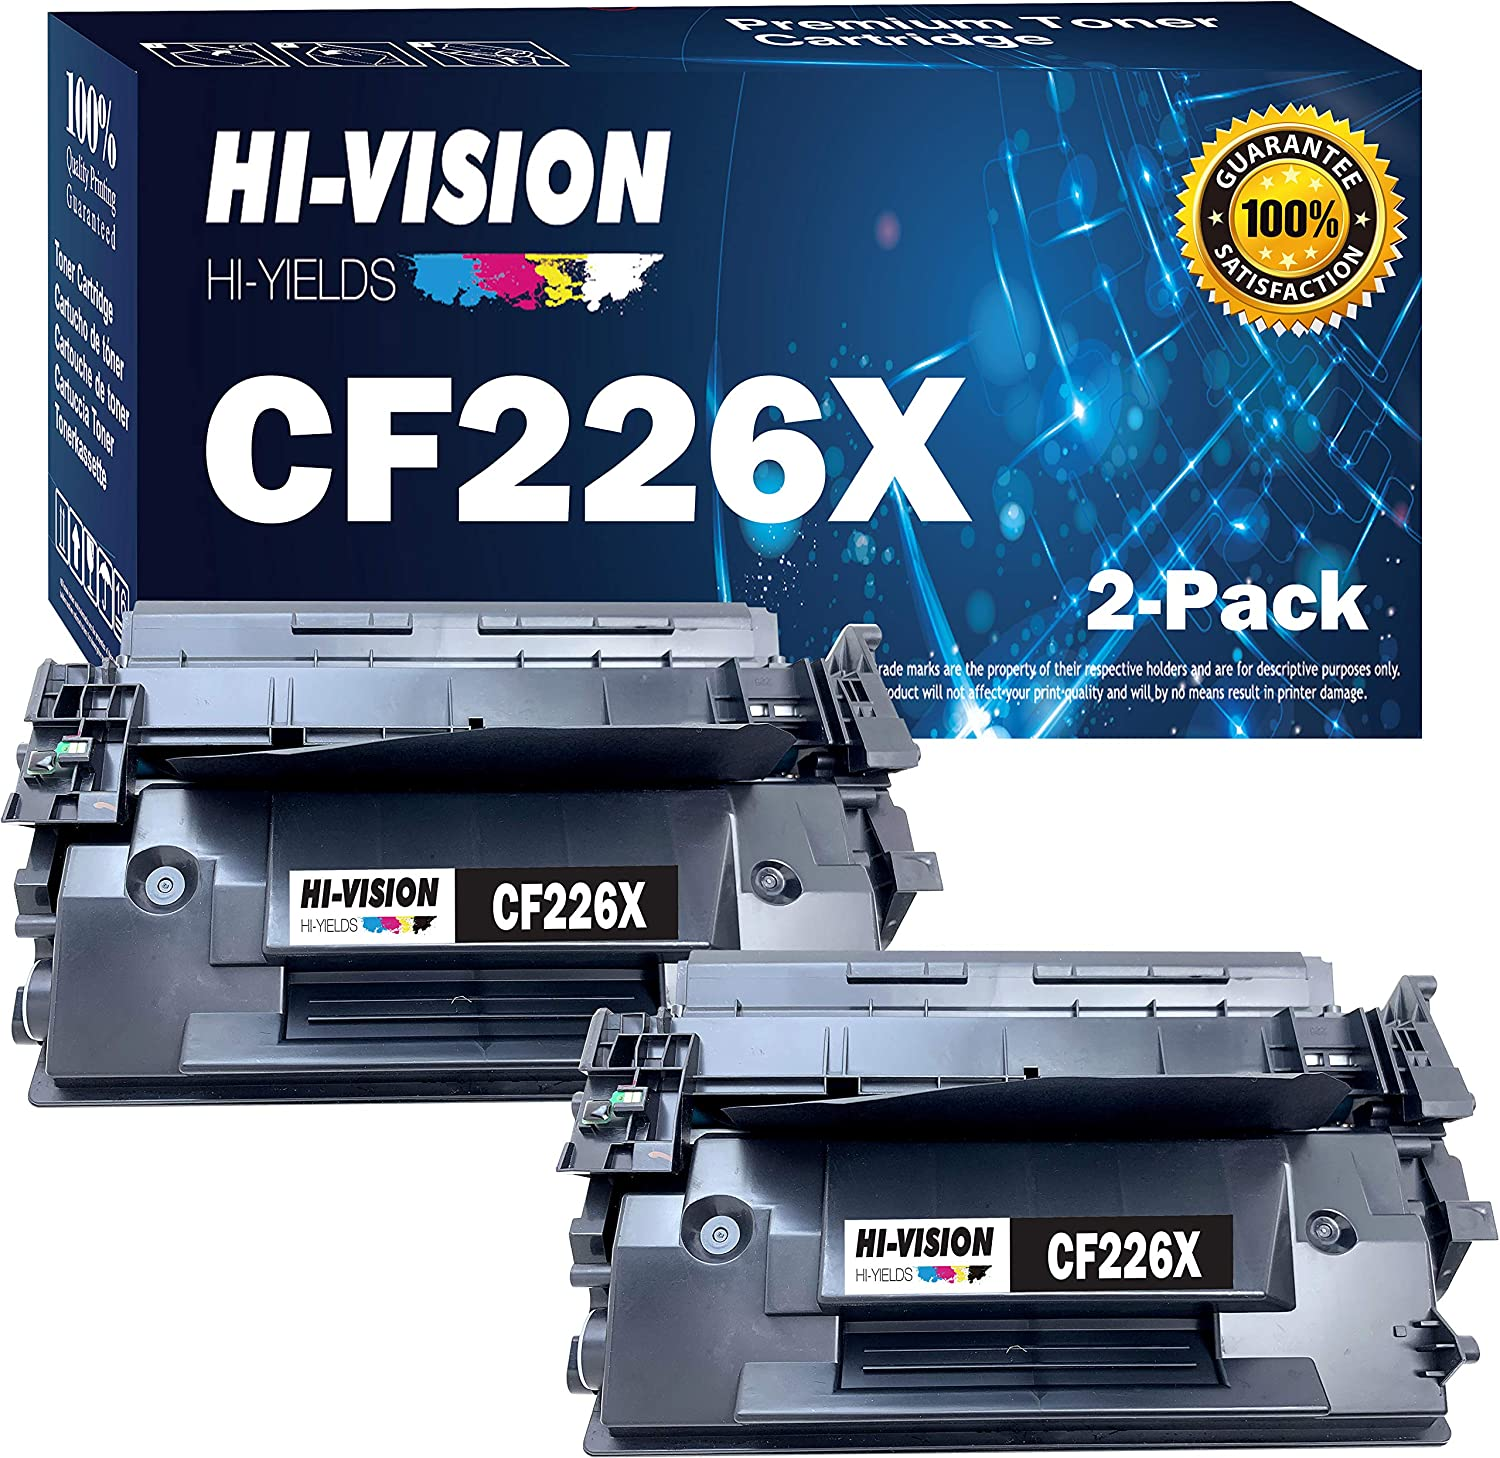 HI-VISION HI-YIELDS Compatible Toner Replacement Inventory cleanup selling sale Cartridge Houston Mall H for